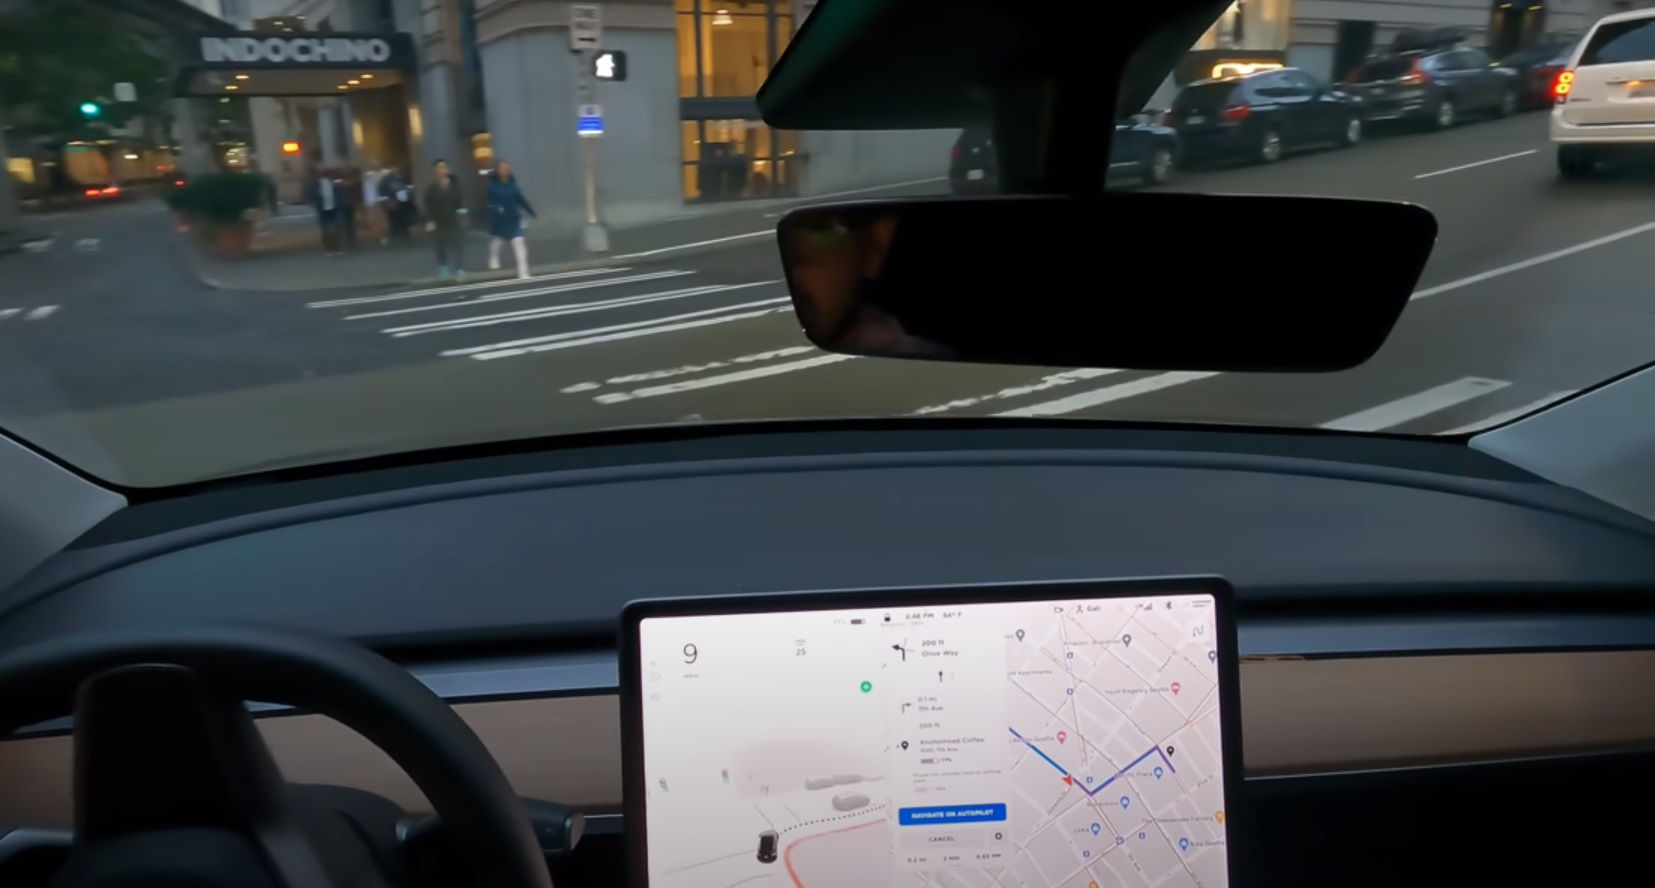 Tesla's Public Rollout of Full Self-Driving Beta Has San Francisco Officials Worried